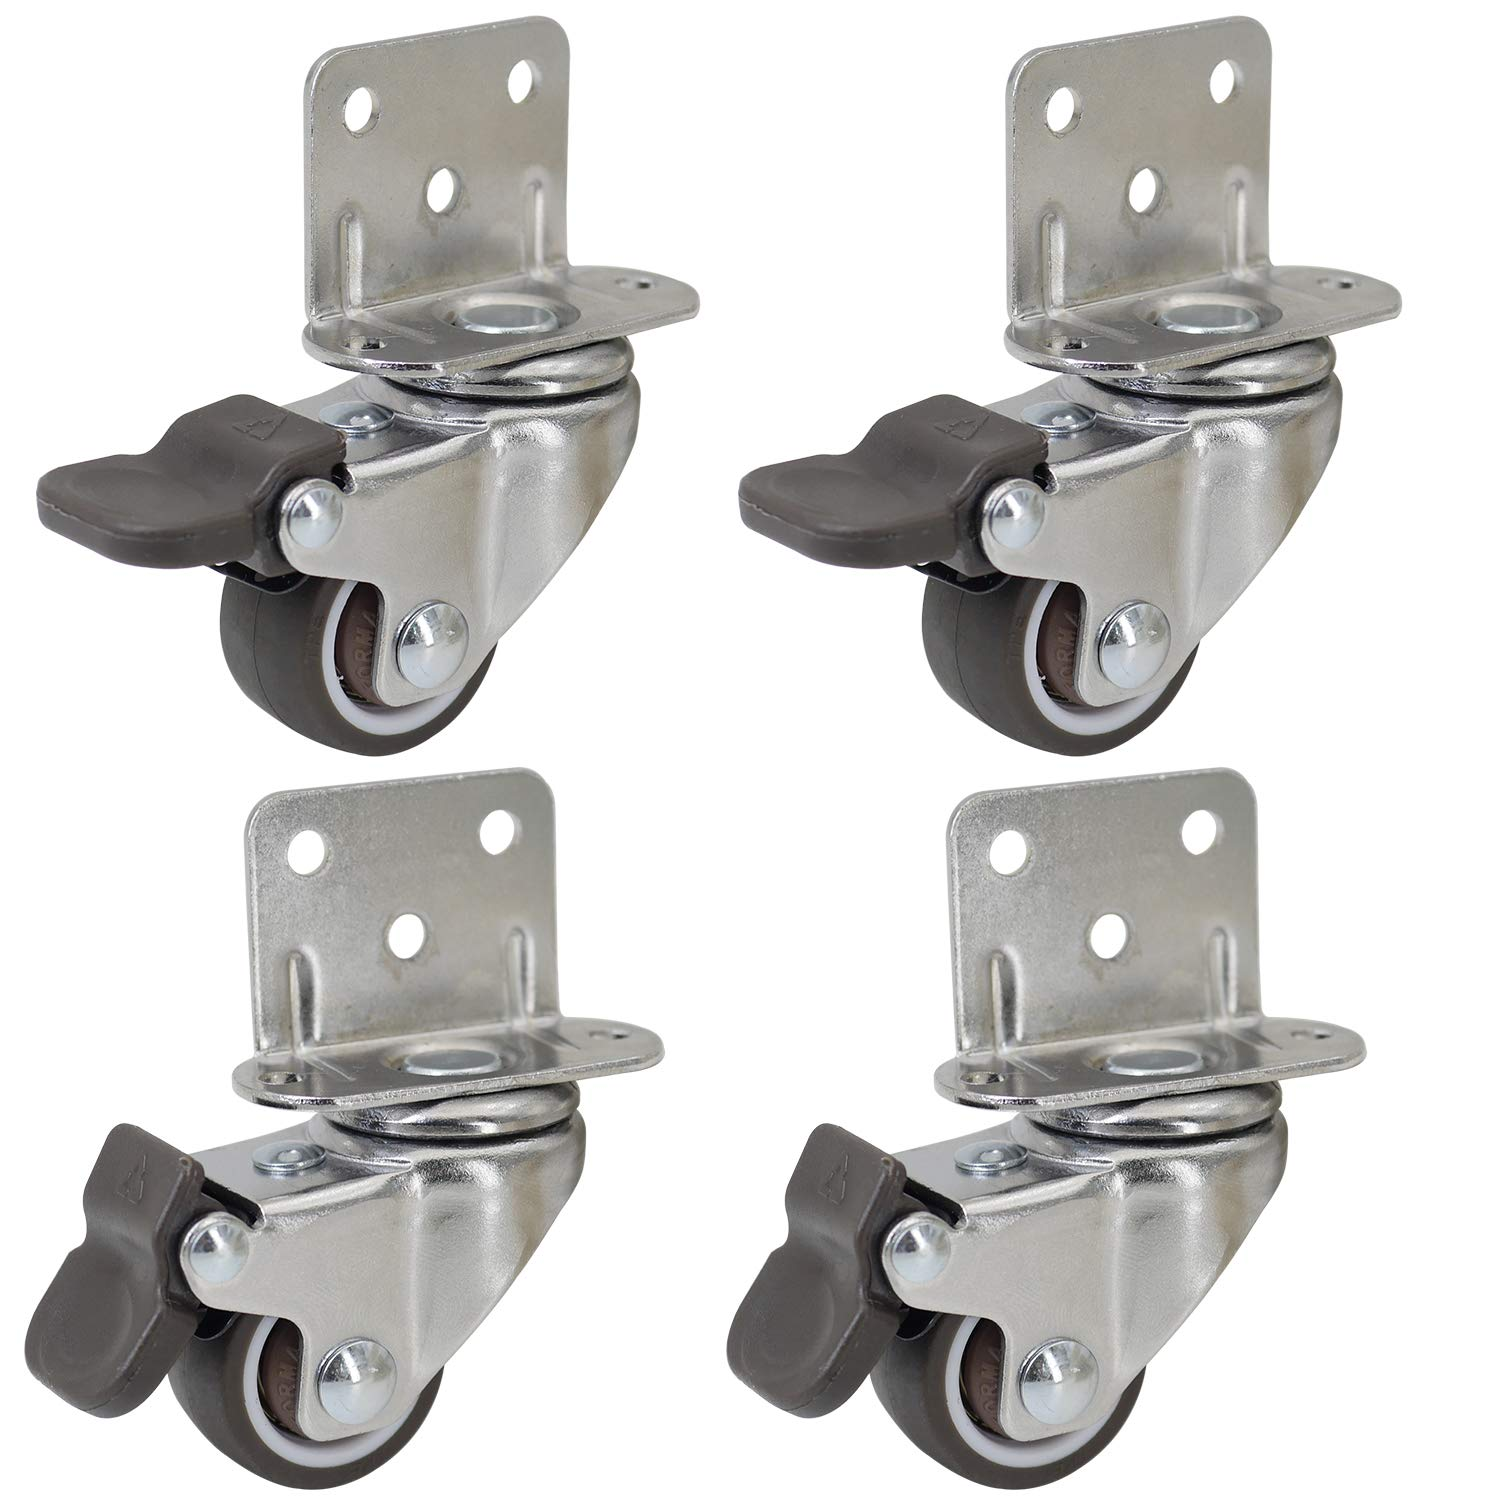 """Dr.Luck 1"""" L-Shaped Plate Swivel Caster w/Brake, 5 Holes L-Clip Side Mount Plate for Narrow Install Place, TPR Rubber Wheel Move Silent Smooth Sturdy, 4 Pack Total Load Capacity 80Lbs/36Kg"""